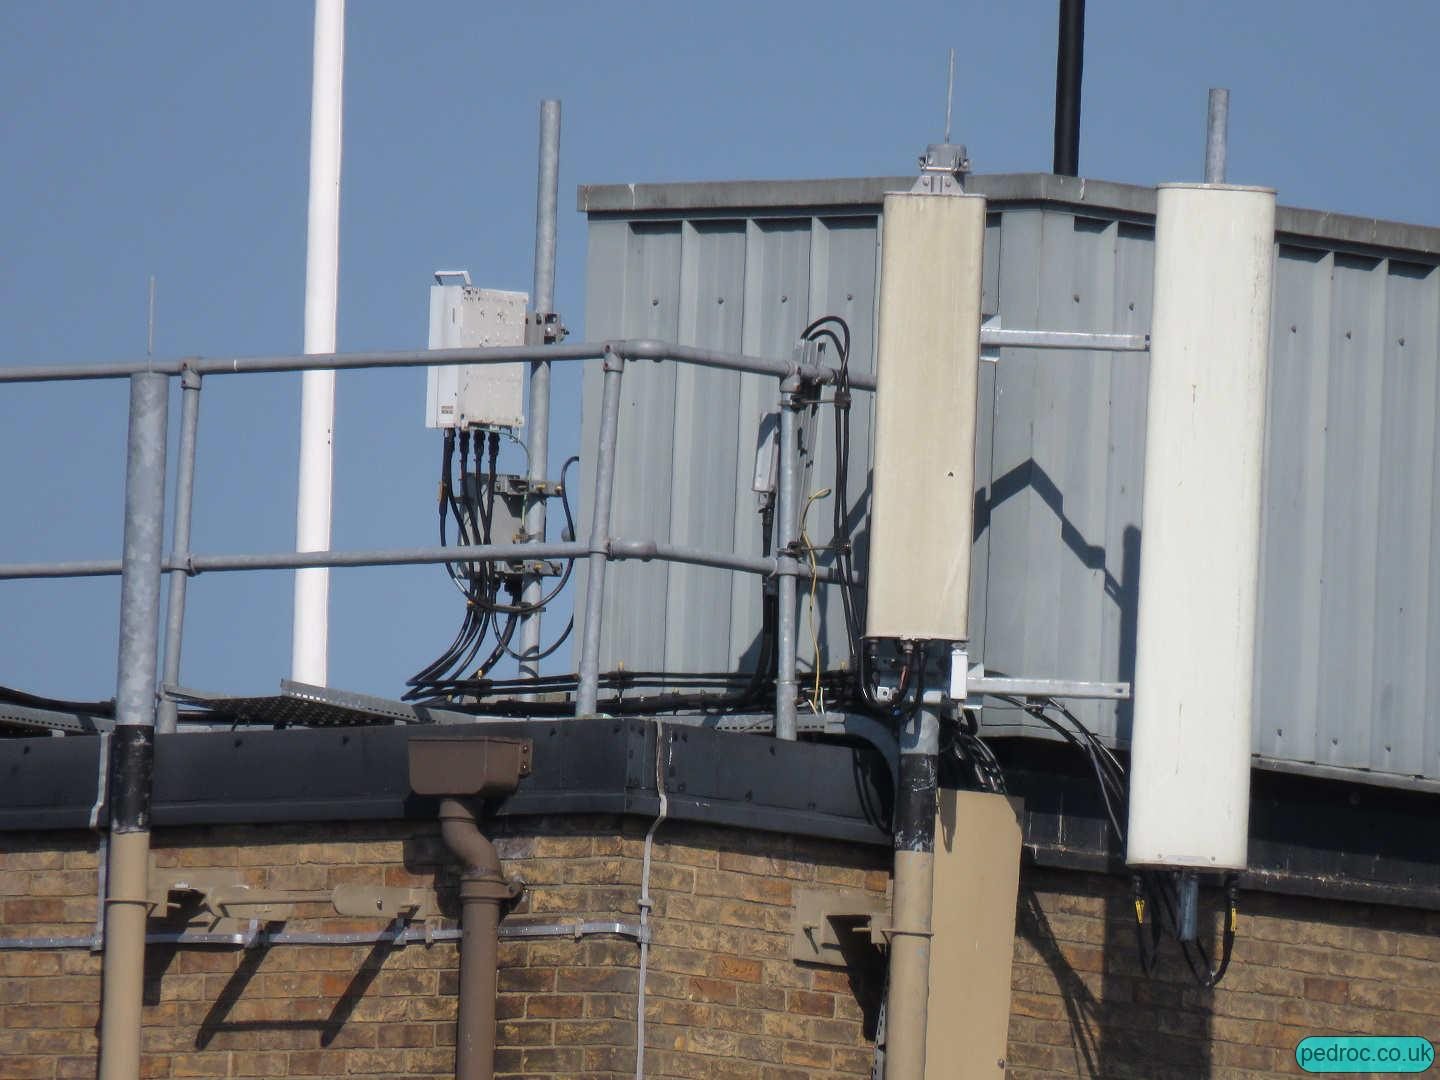 Closeup of EE/3's antennas: Huawei ATR with spare low band ports for EE 2T4R L26 and then a dual band Kathrein carrying the remaining.